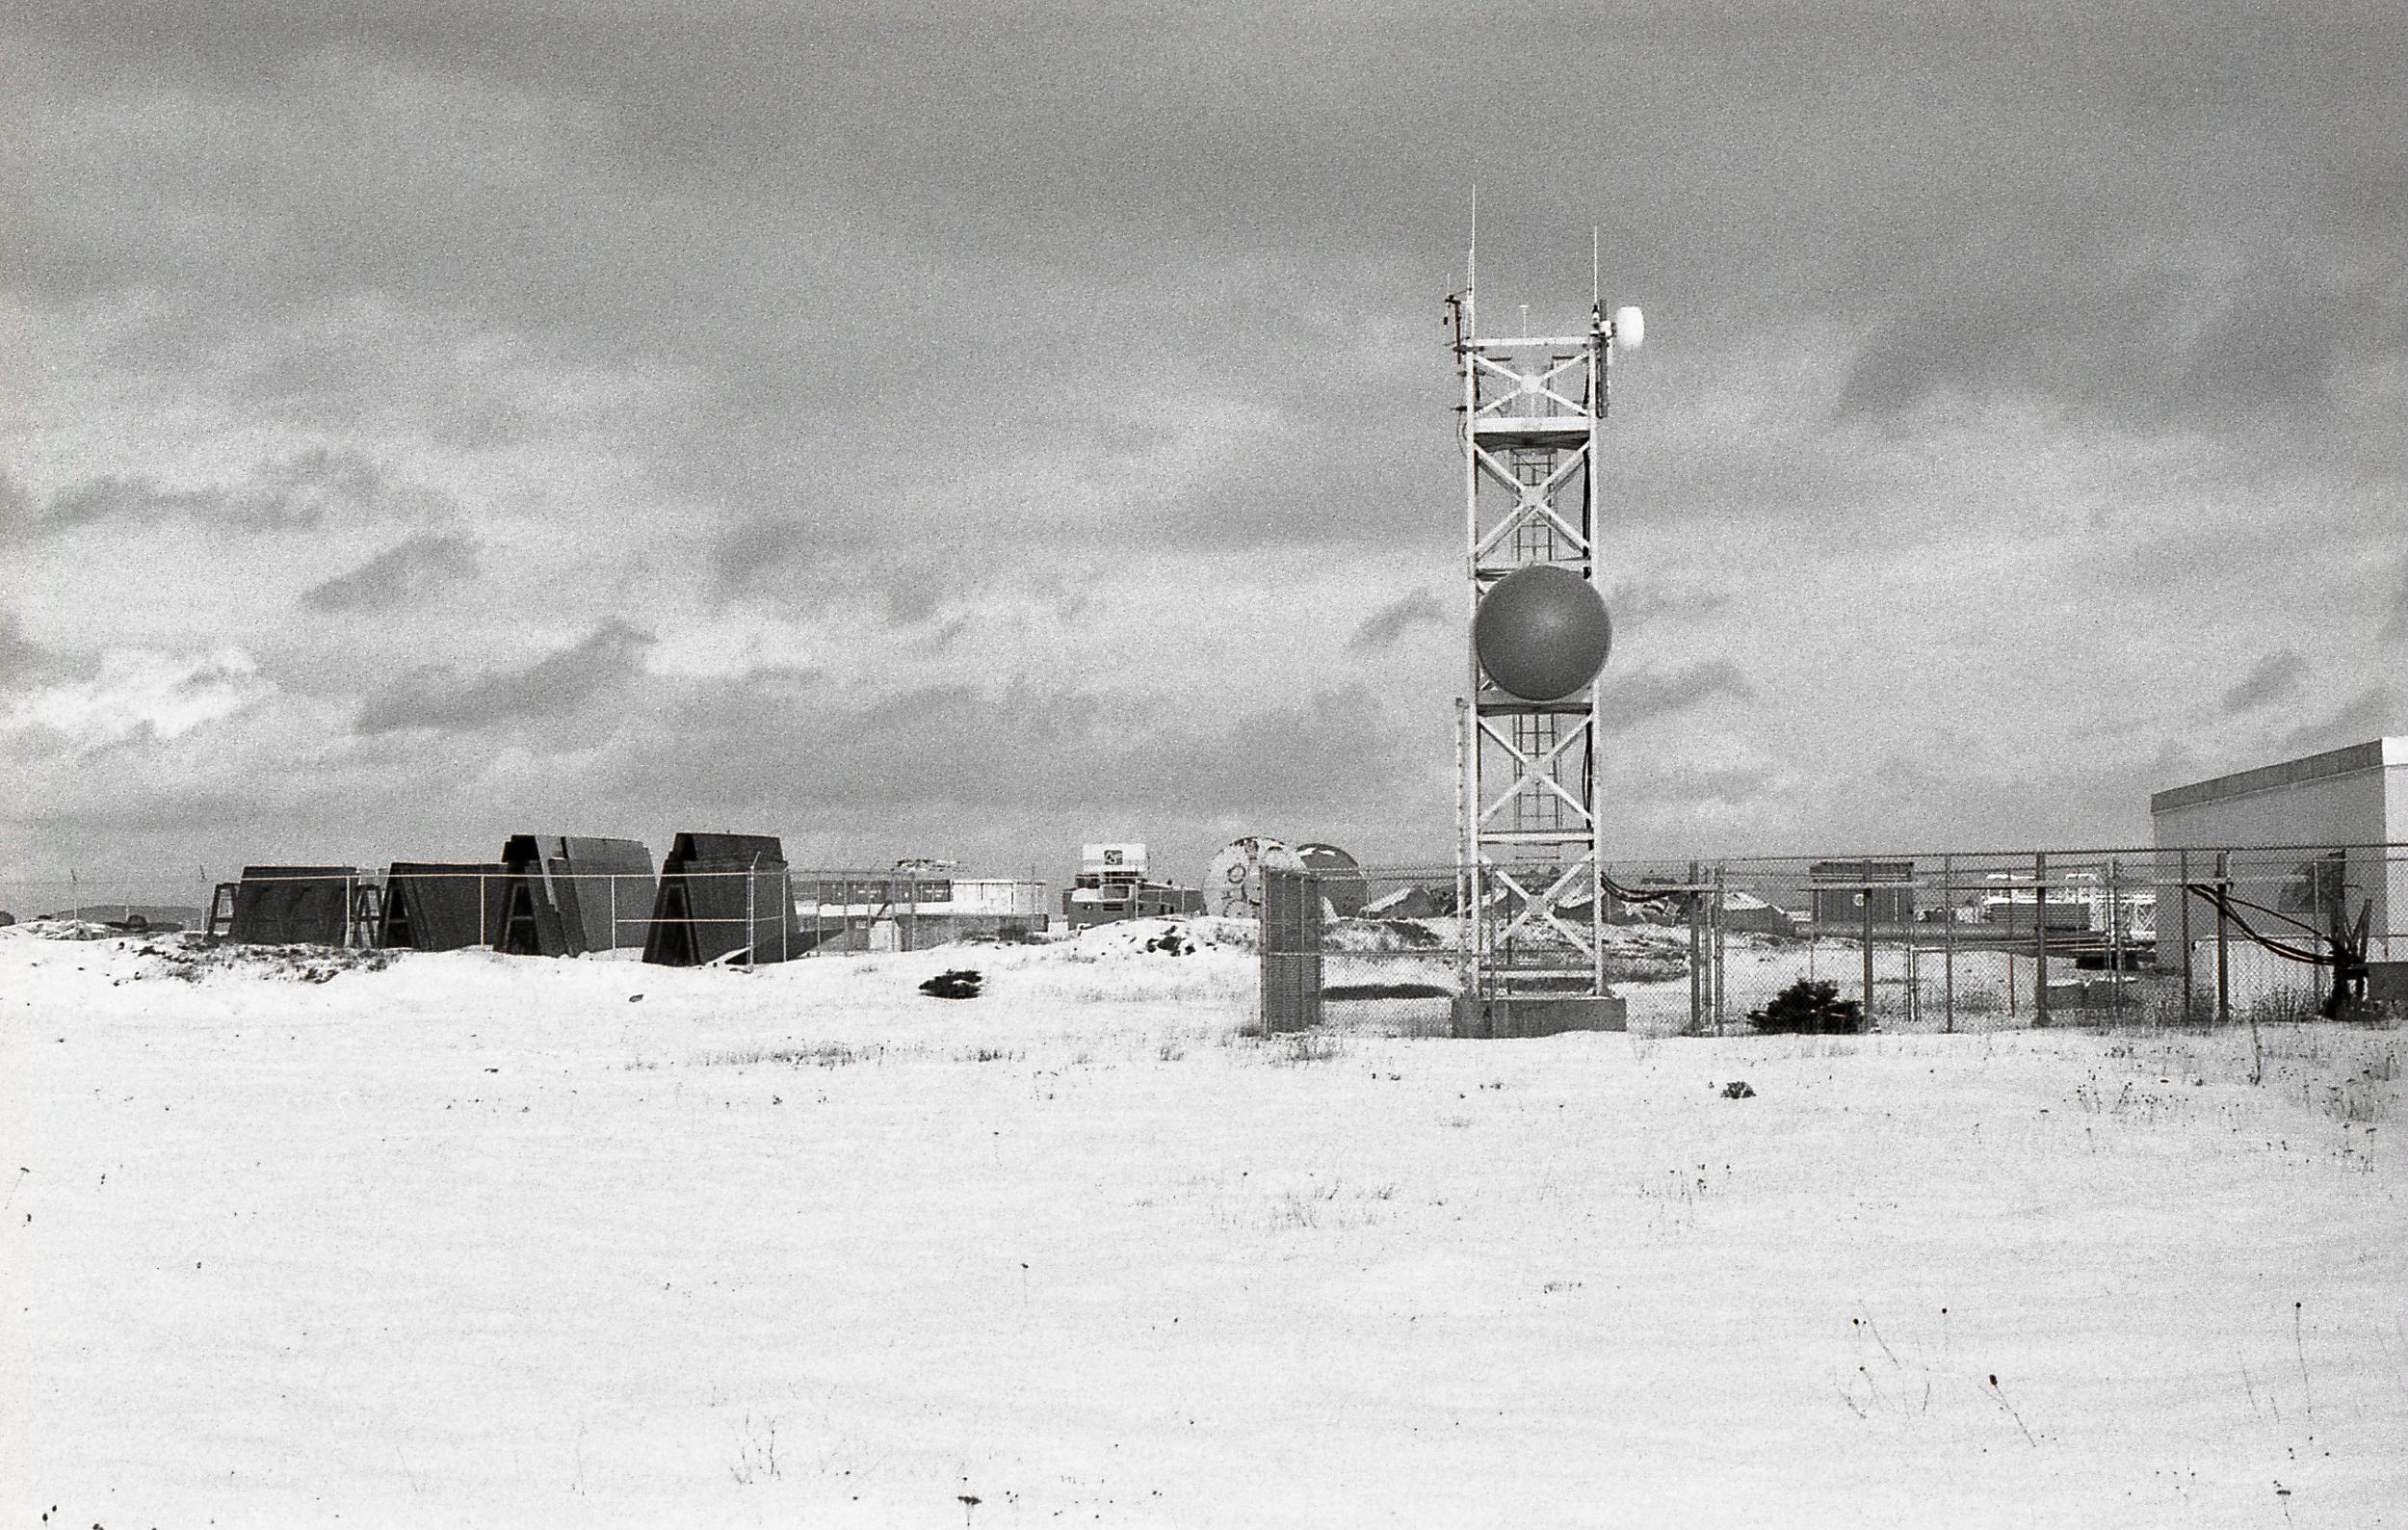 Coast Guard Communications tower at Argentia. There is a constant flow of marine traffic on the bay. Behind the tower is a storage yard of components used in constructing the new nickel processing facility.